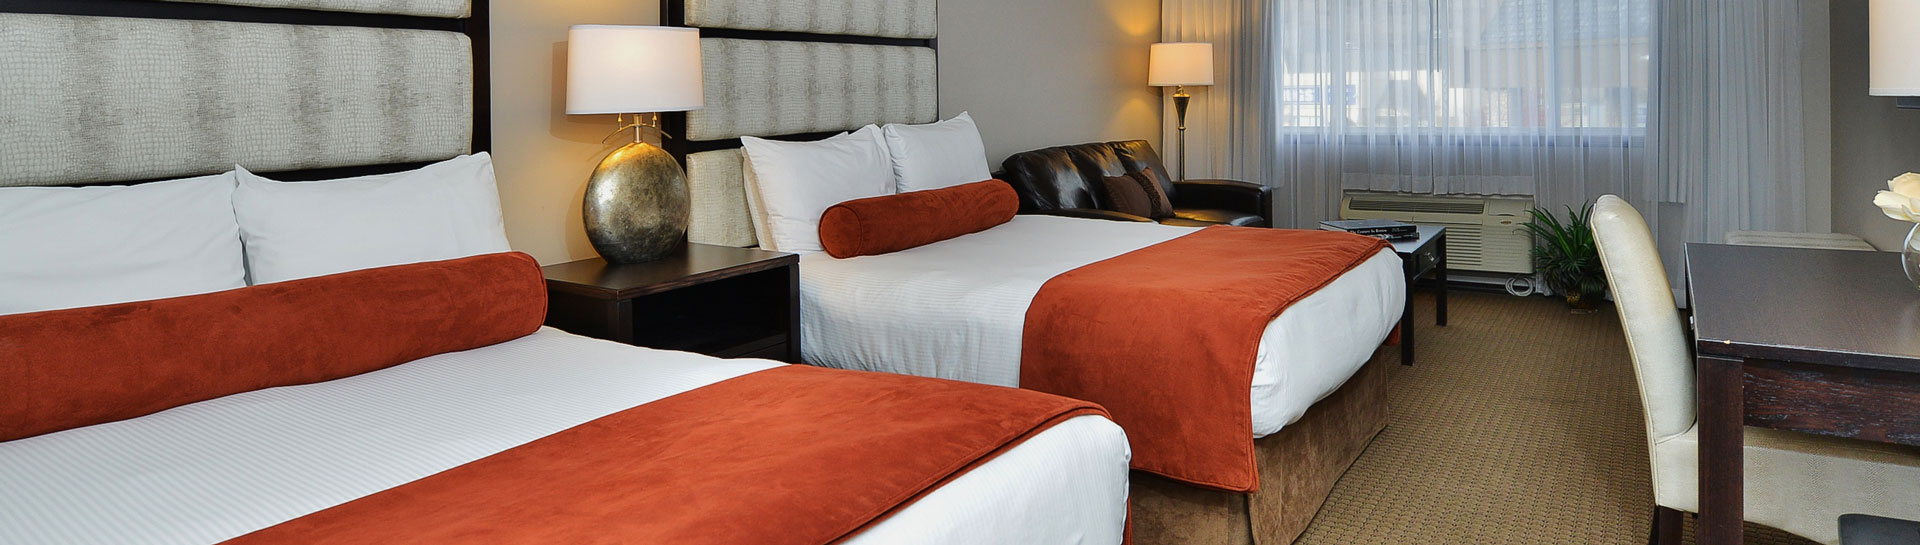 Hotel room with 2 beds and a desk - Photo Credit Prestige Hotel